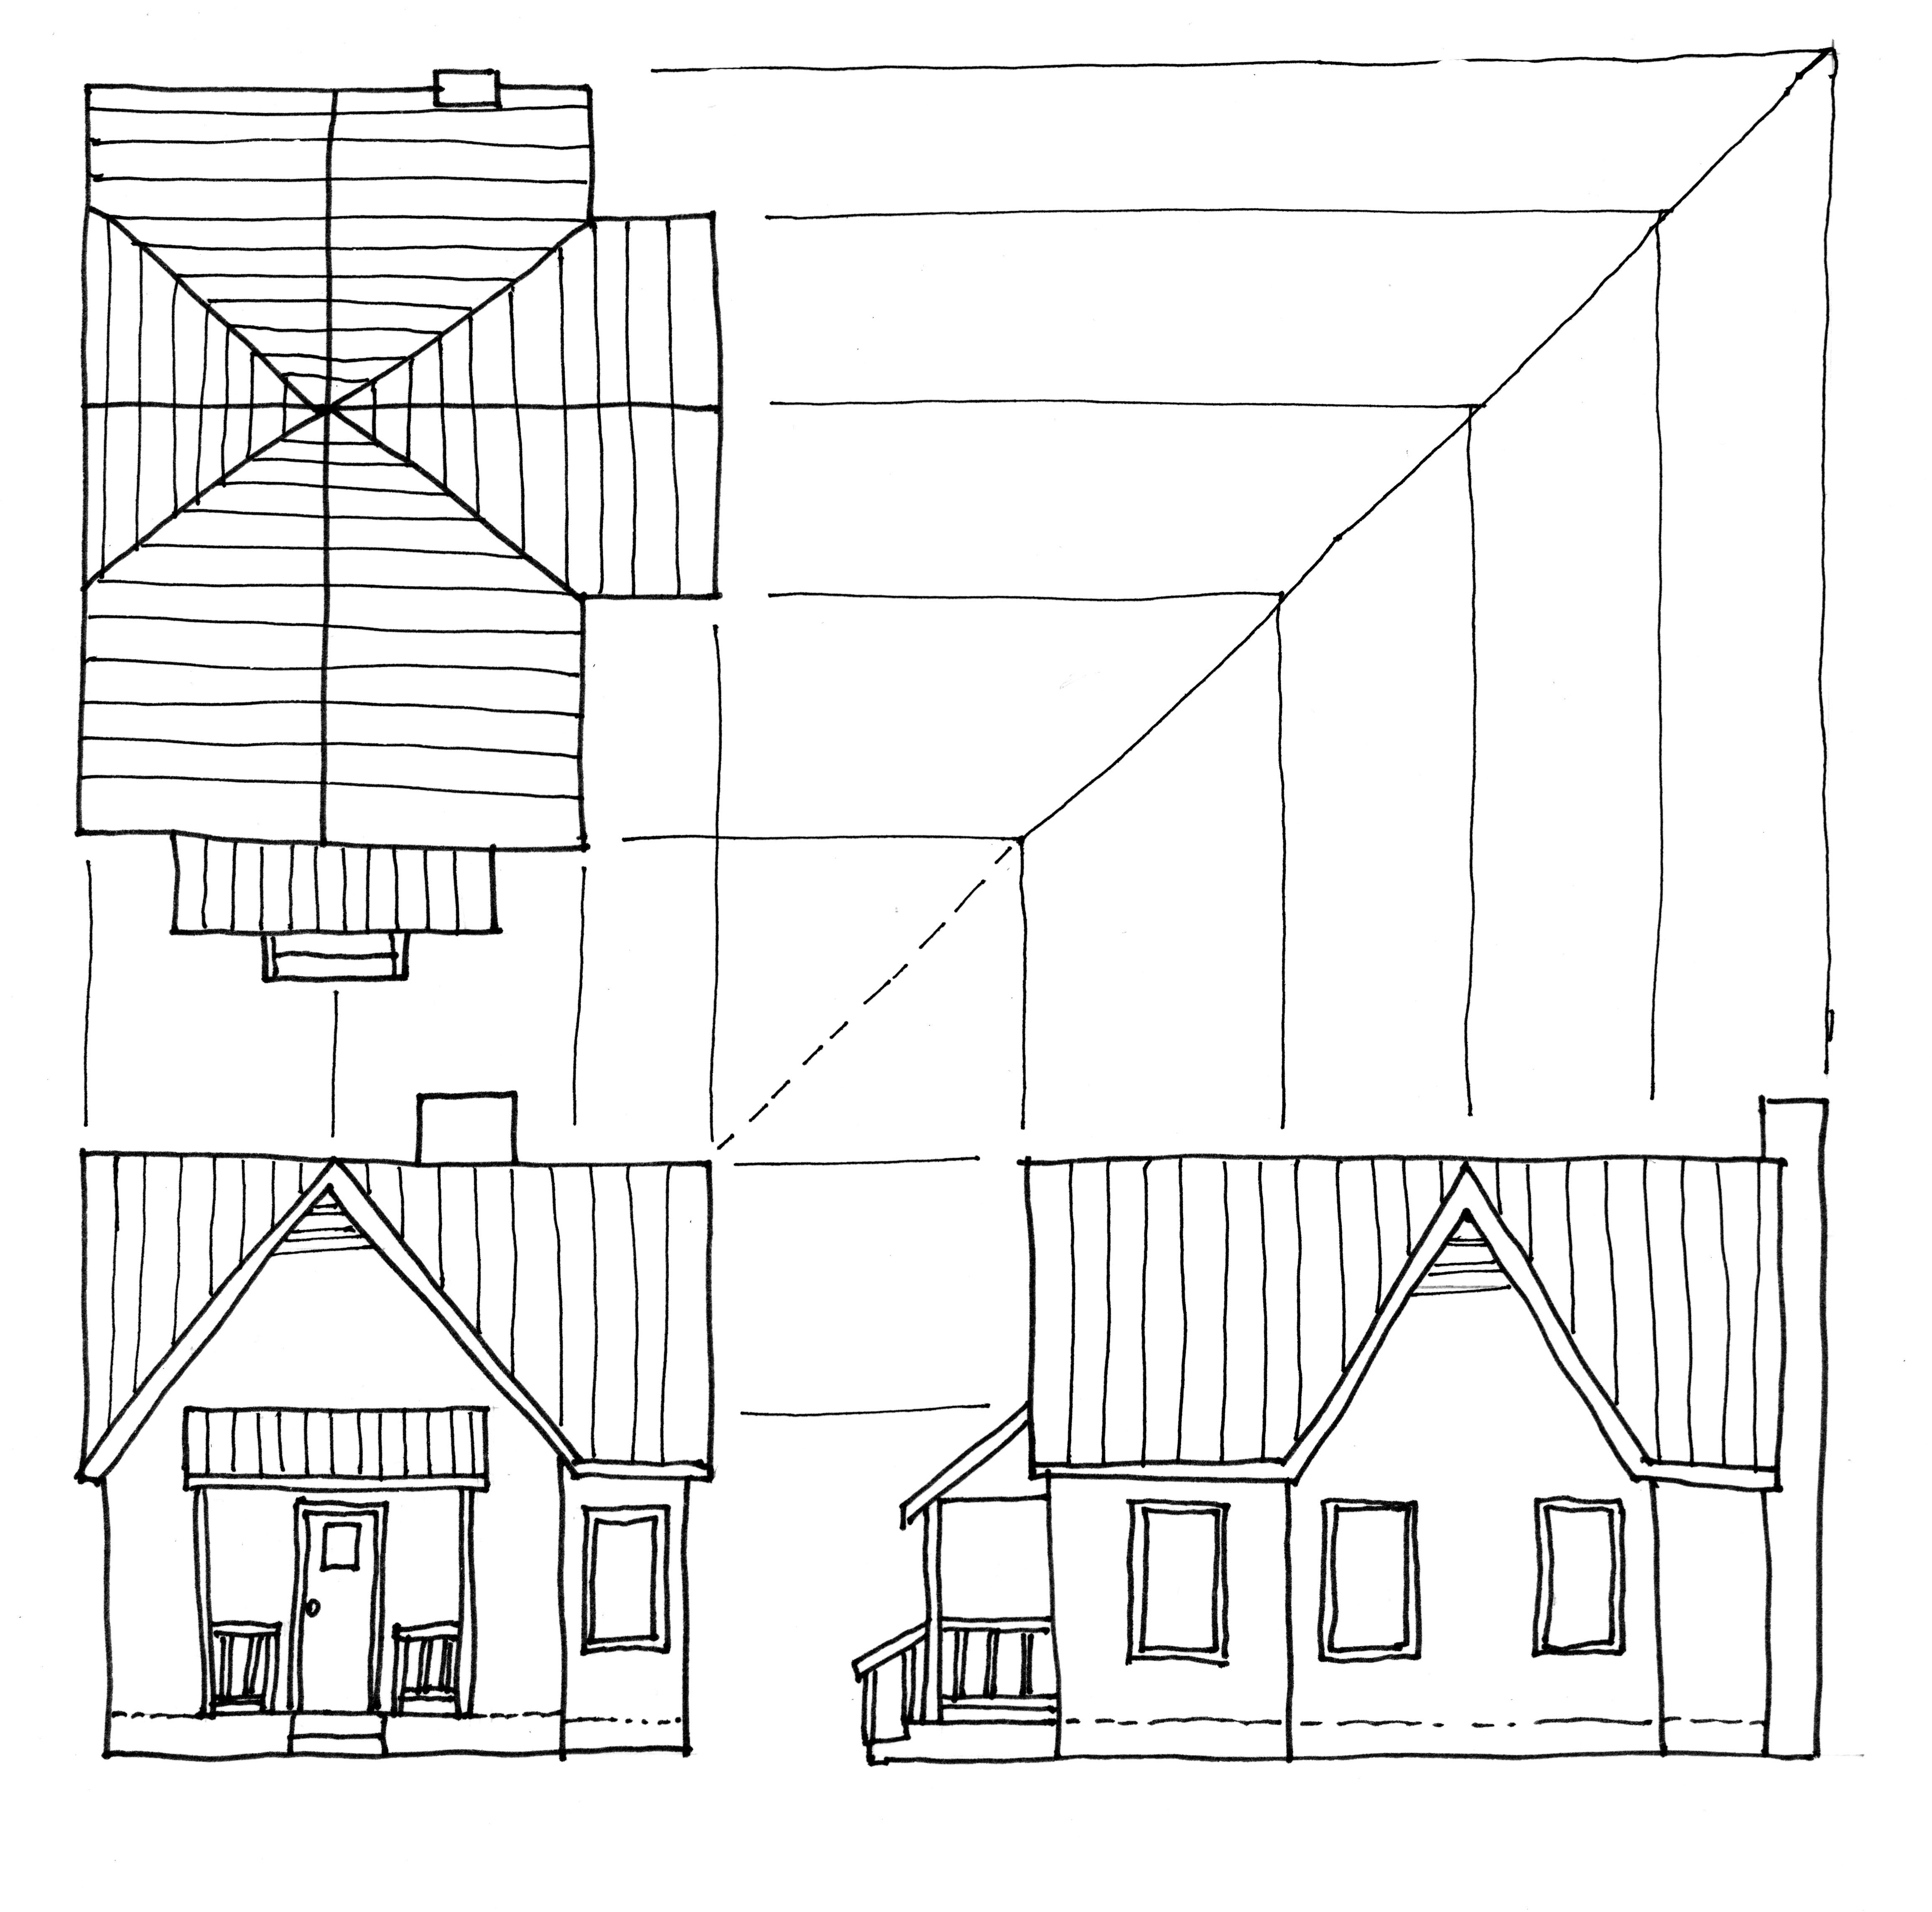 Studying Roof Plans 3 House Design Drawing House Sketch Roof Plan